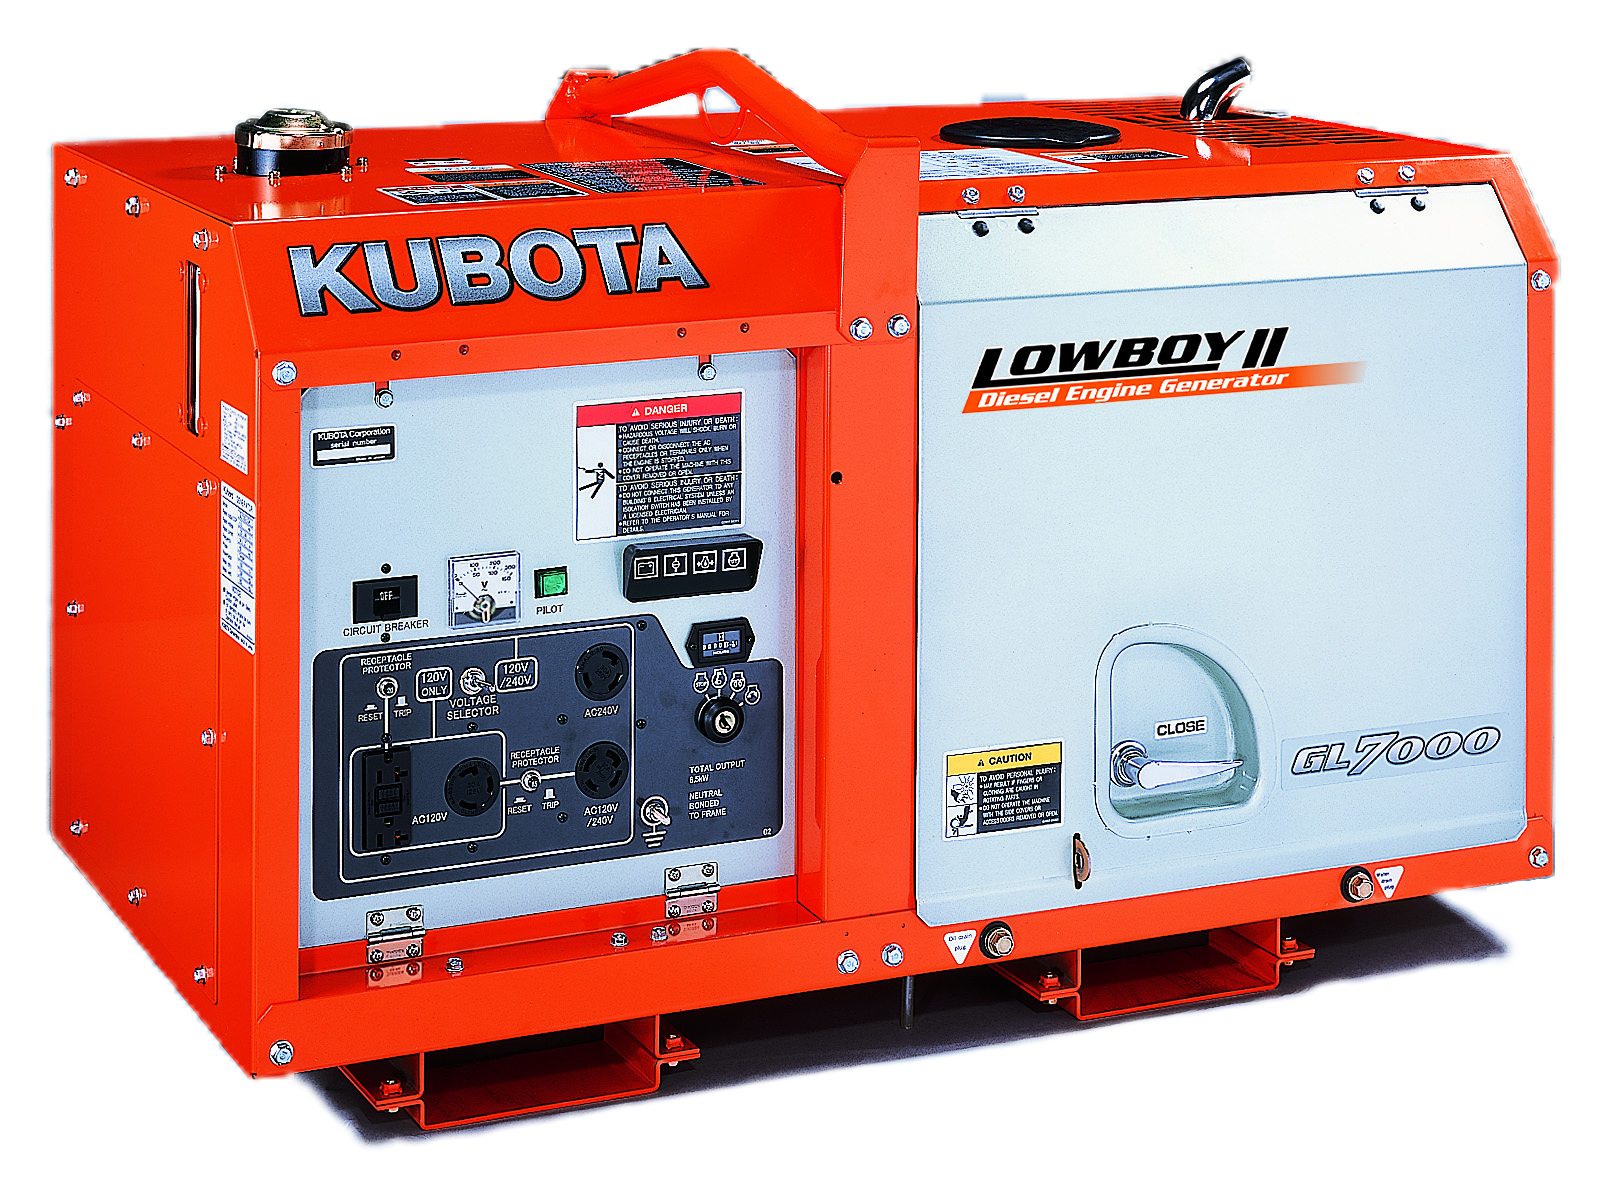 hight resolution of kubota lowboy ii compact quiet diesel generator gl7000 7 kw standby 6 5 kw prime single phase 120 240 volt liquid cooled